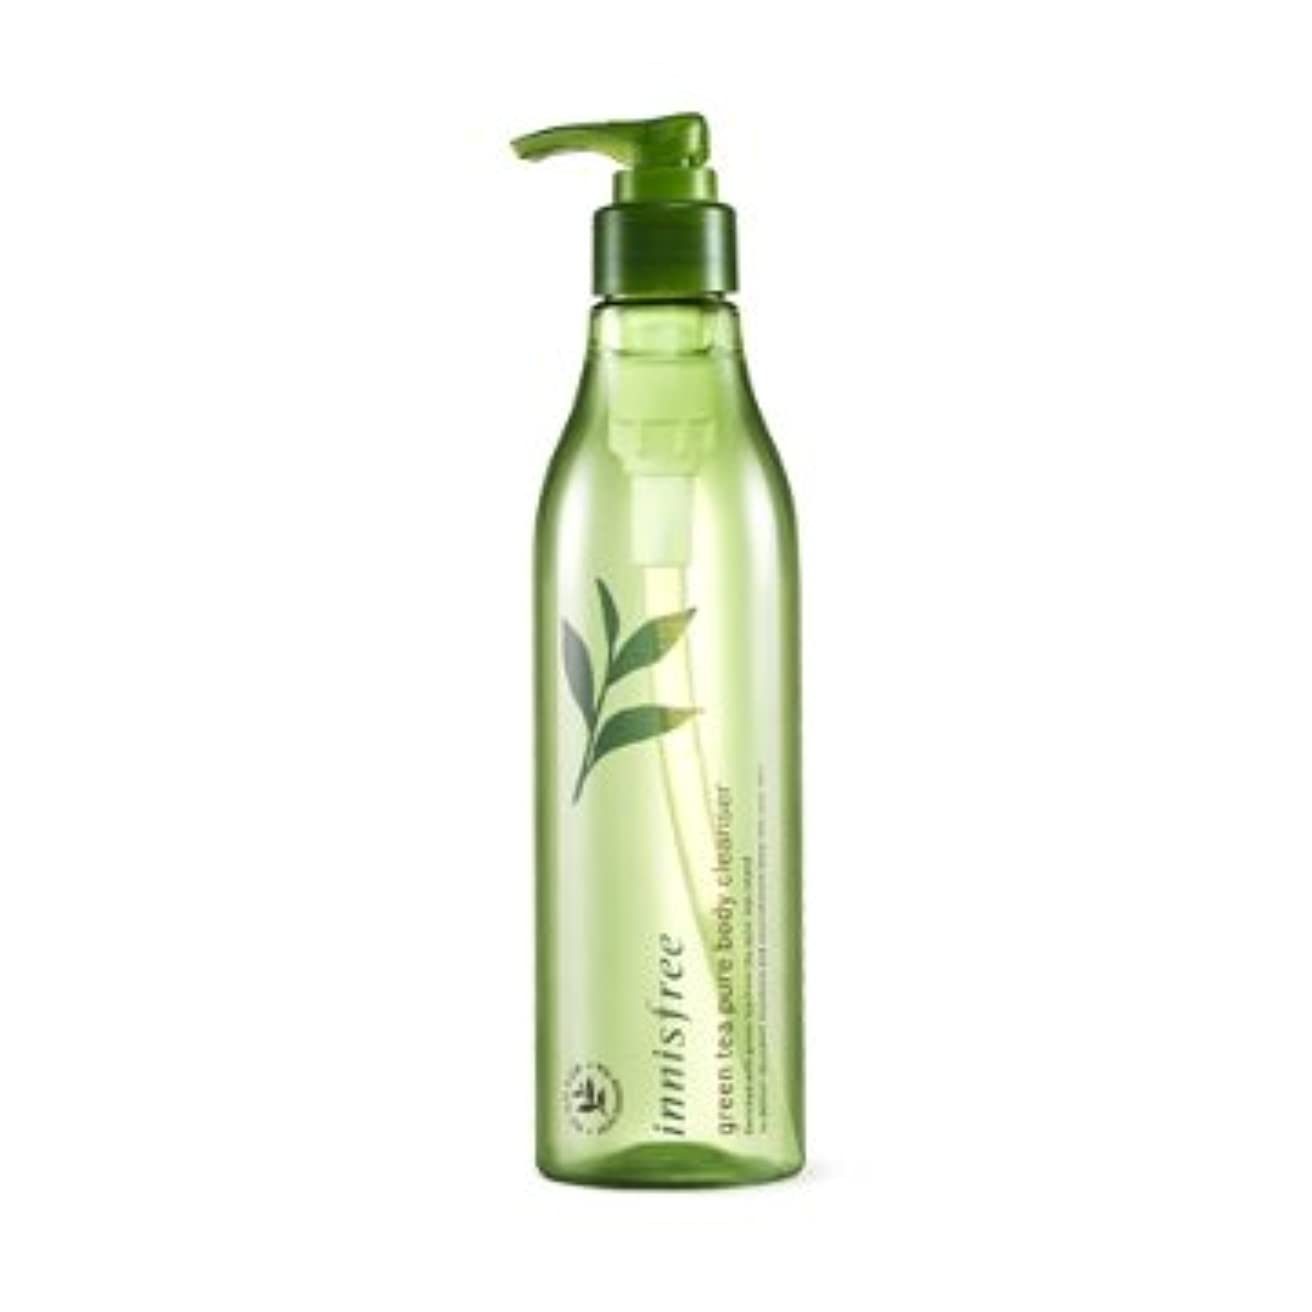 結核トロピカル前件【イニスフリー】Innisfree green tea pure body cleanser - 300ml (韓国直送品) (SHOPPINGINSTAGRAM)